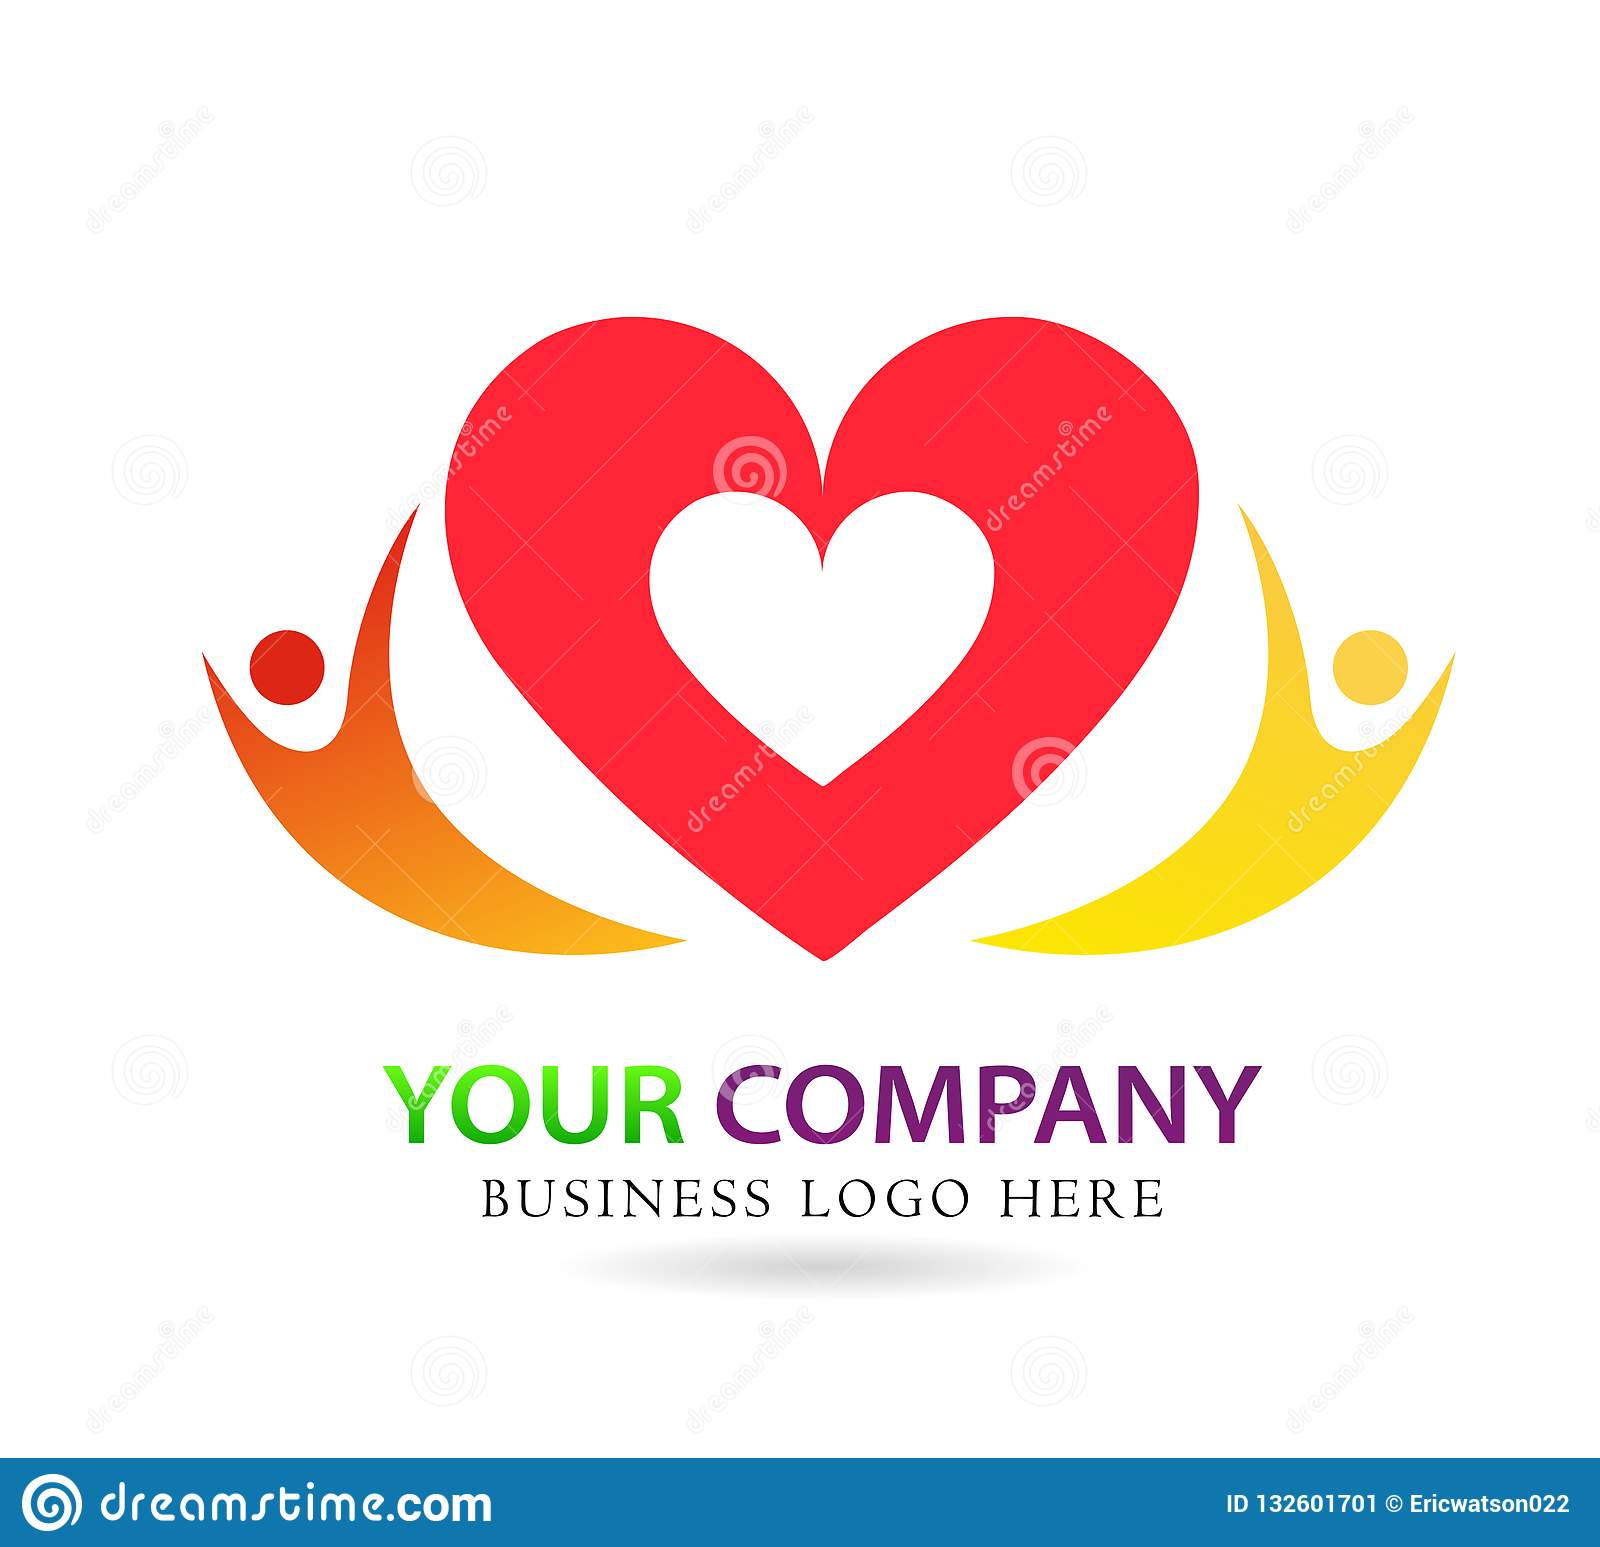 Family love care union in red heart company concept logo icon element sign on white background